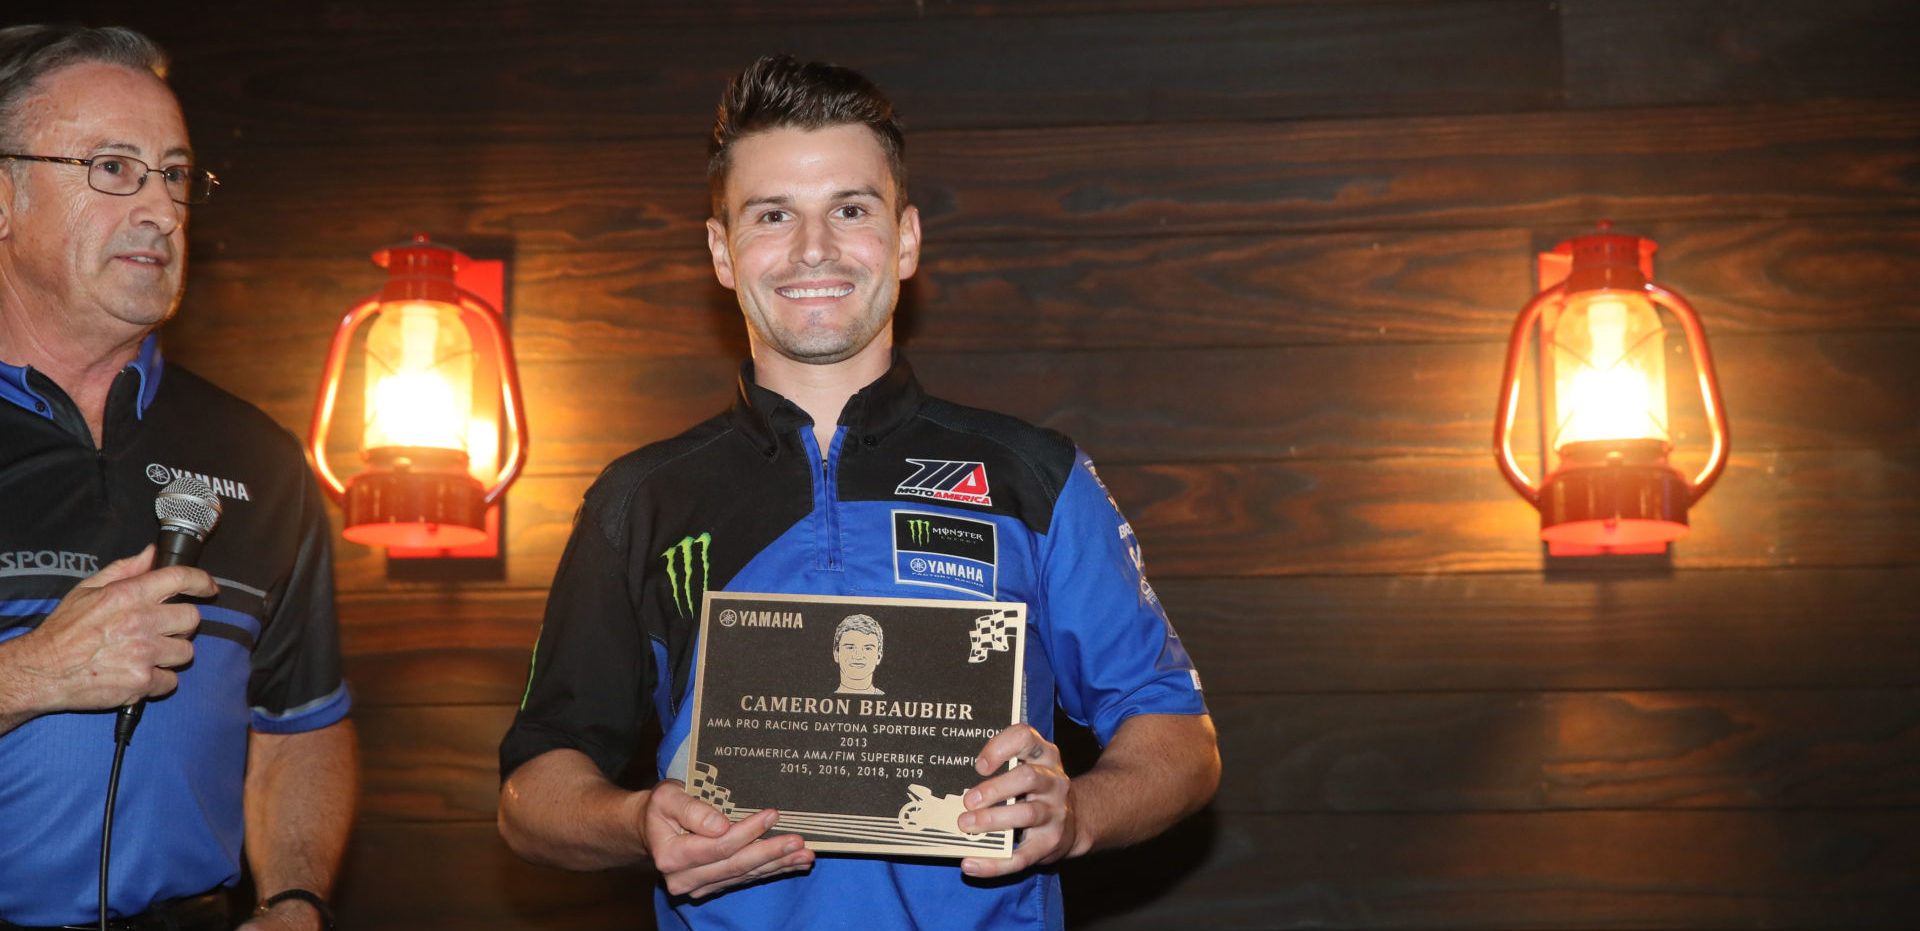 Four-time MotoAmerica Superbike Champion Cameron Beaubier (right), seen here with his 2019 team manager Tom Halverson (left), was one of the eight Yamaha racers honored in a ceremony in front of Yamaha employees in the Atlanta, Georgia area. Photo courtesy of Yamaha Motor Corp., U.S.A.